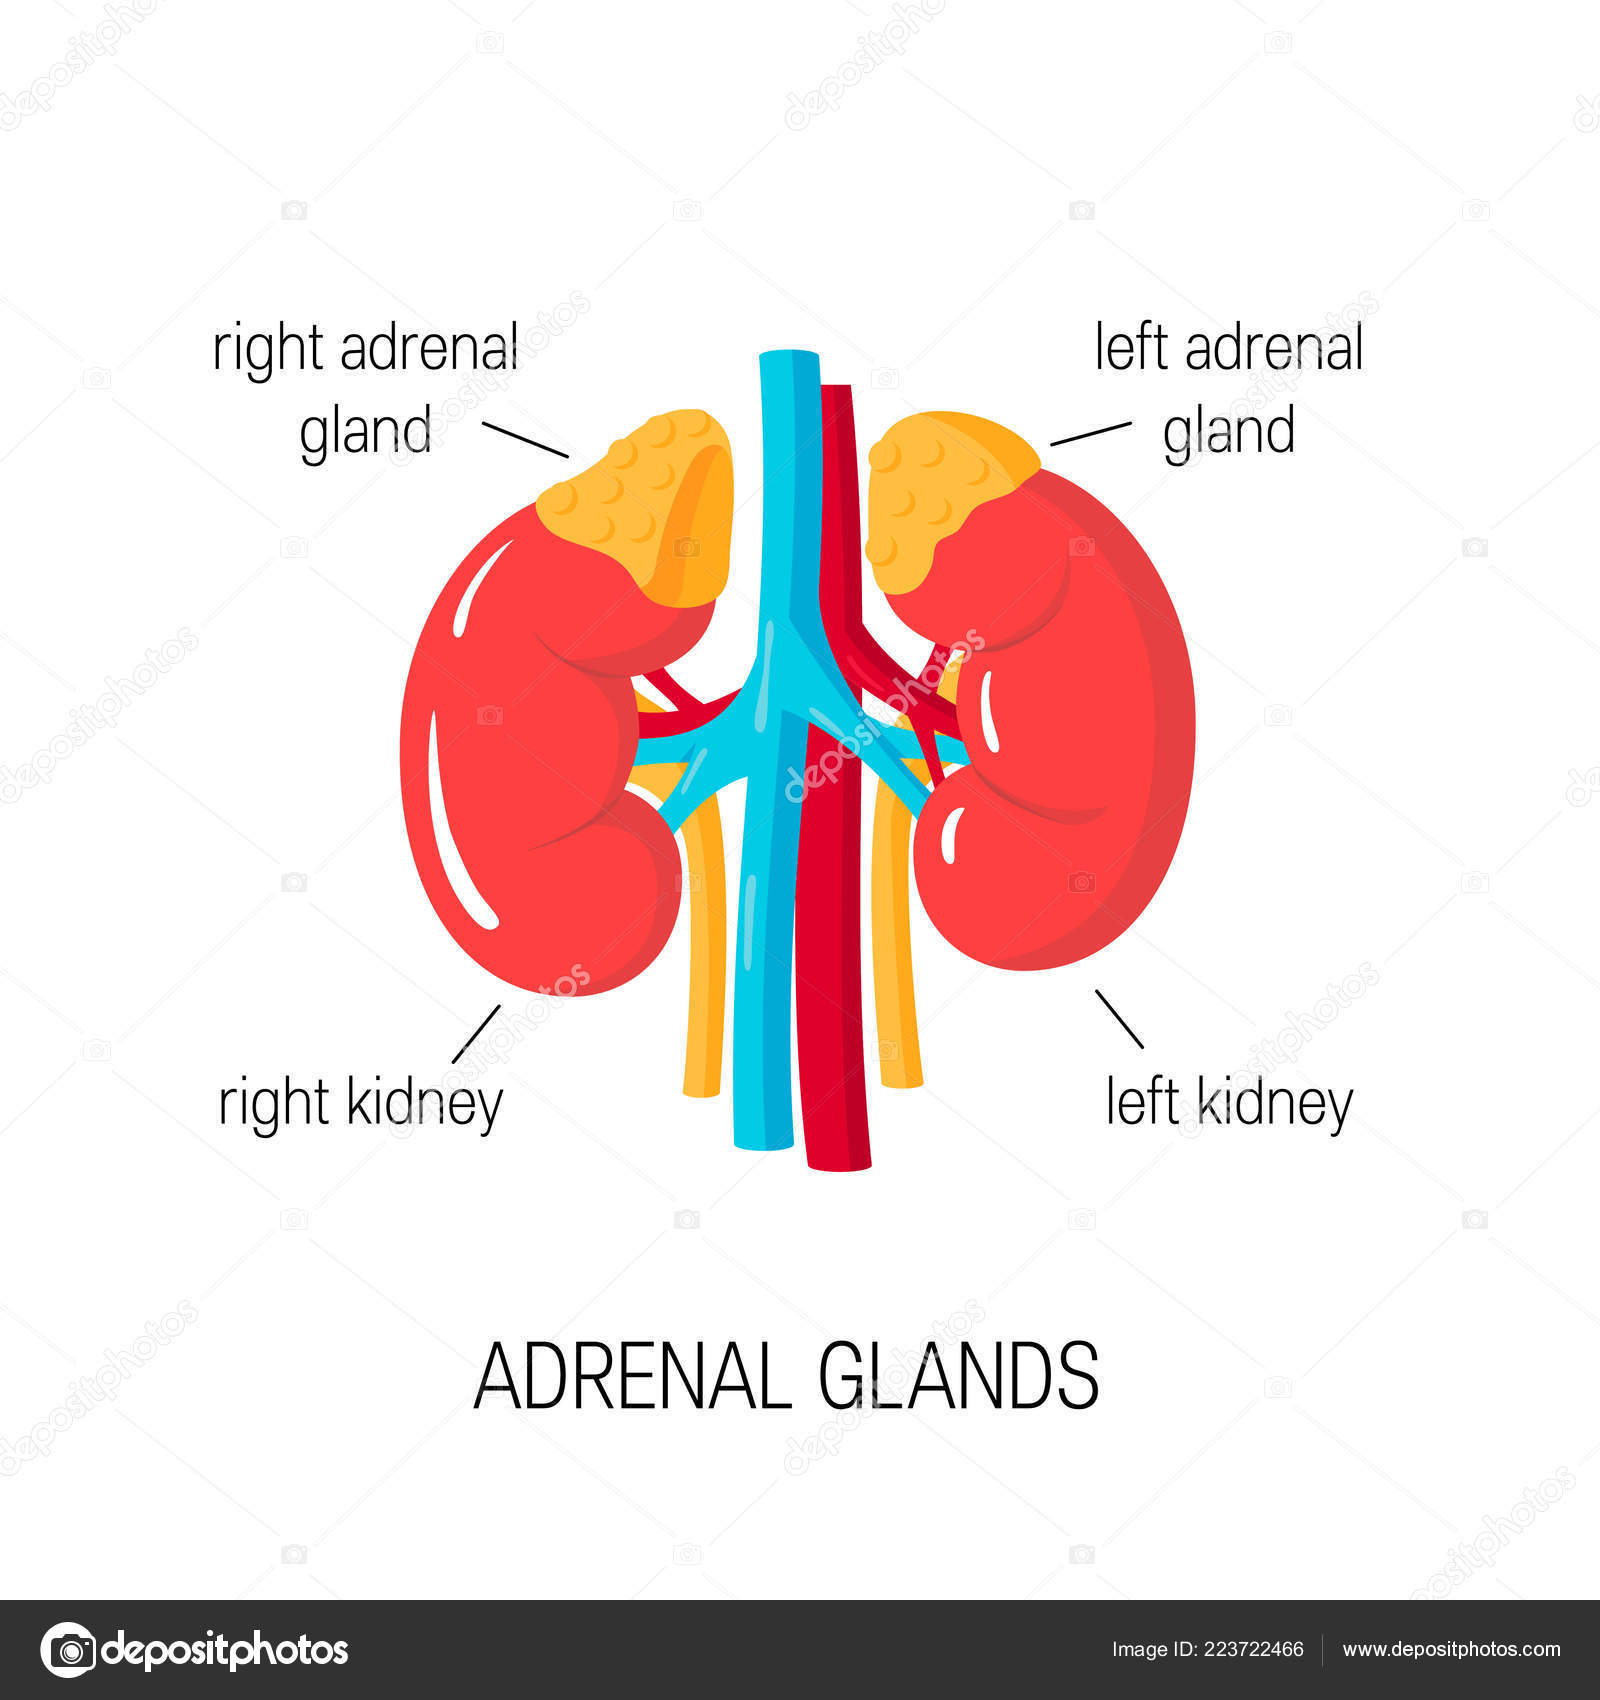 vector diagram of adrenal glands in flat style \u2014 stock vectoradrenal glands vector diagram in flat style medical illustration of endocrine organs \u2014 vector by